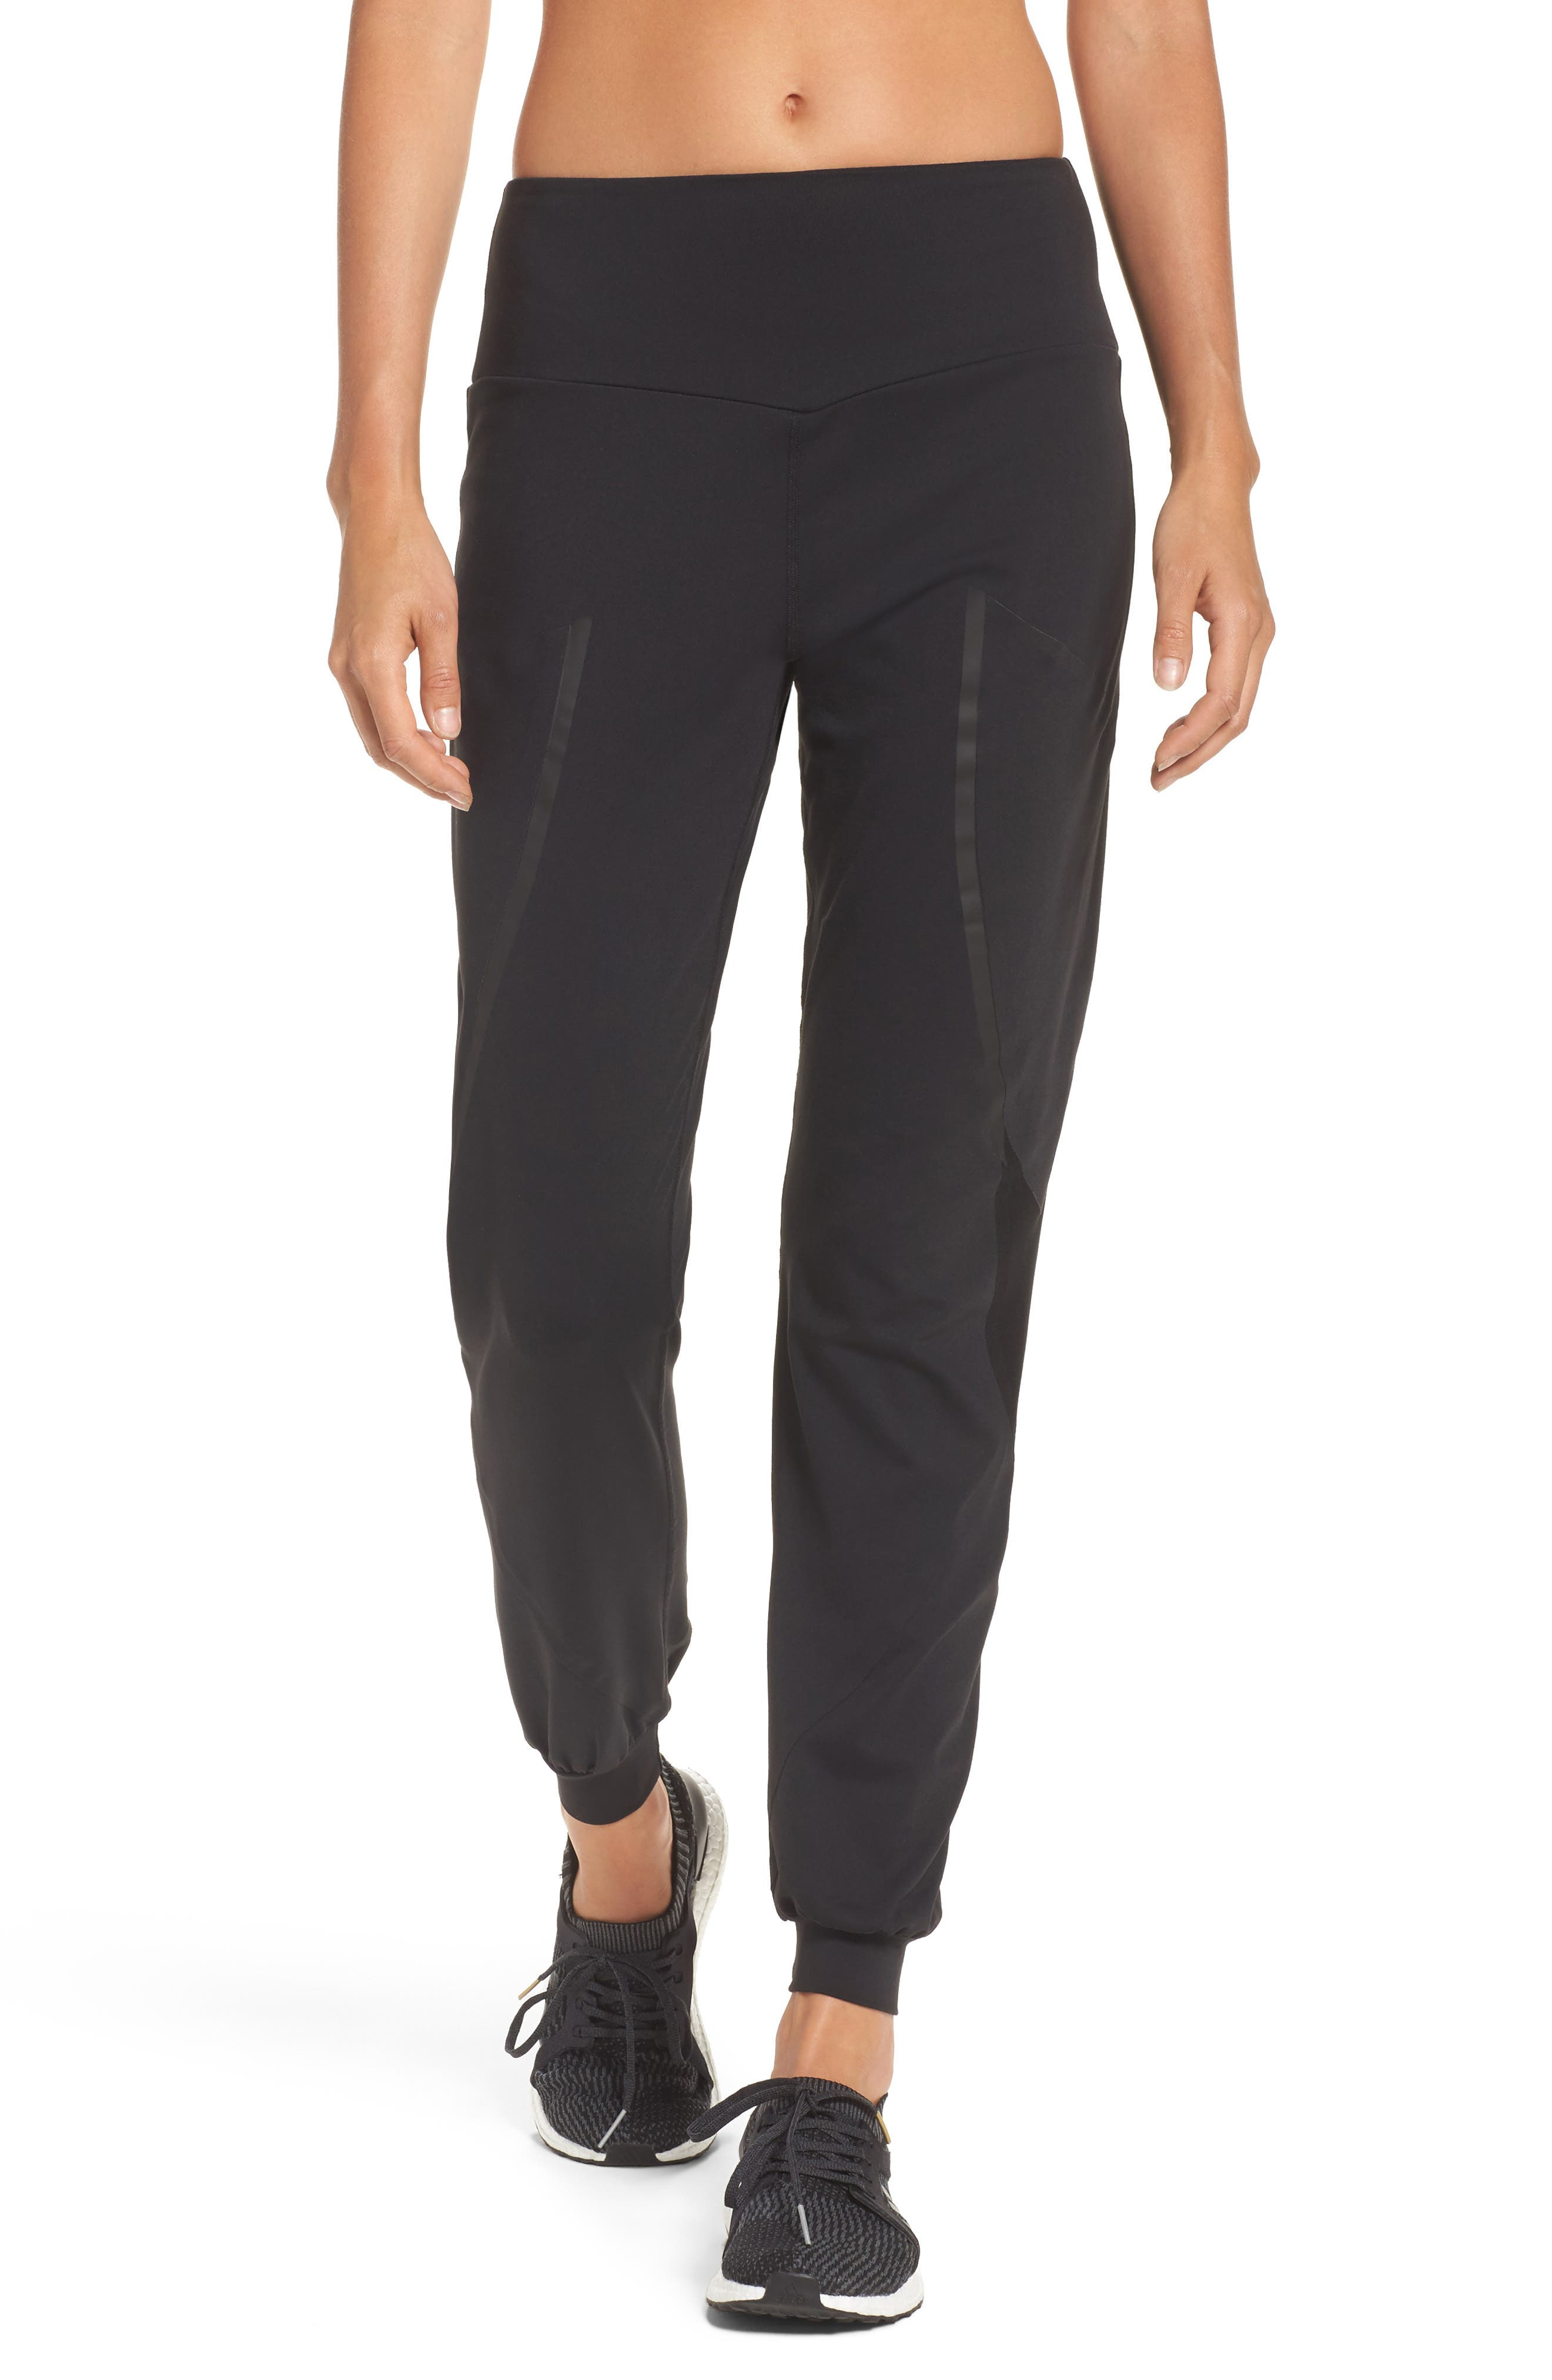 BoomBoom Athletica Track Pants,                         Main,                         color, Black